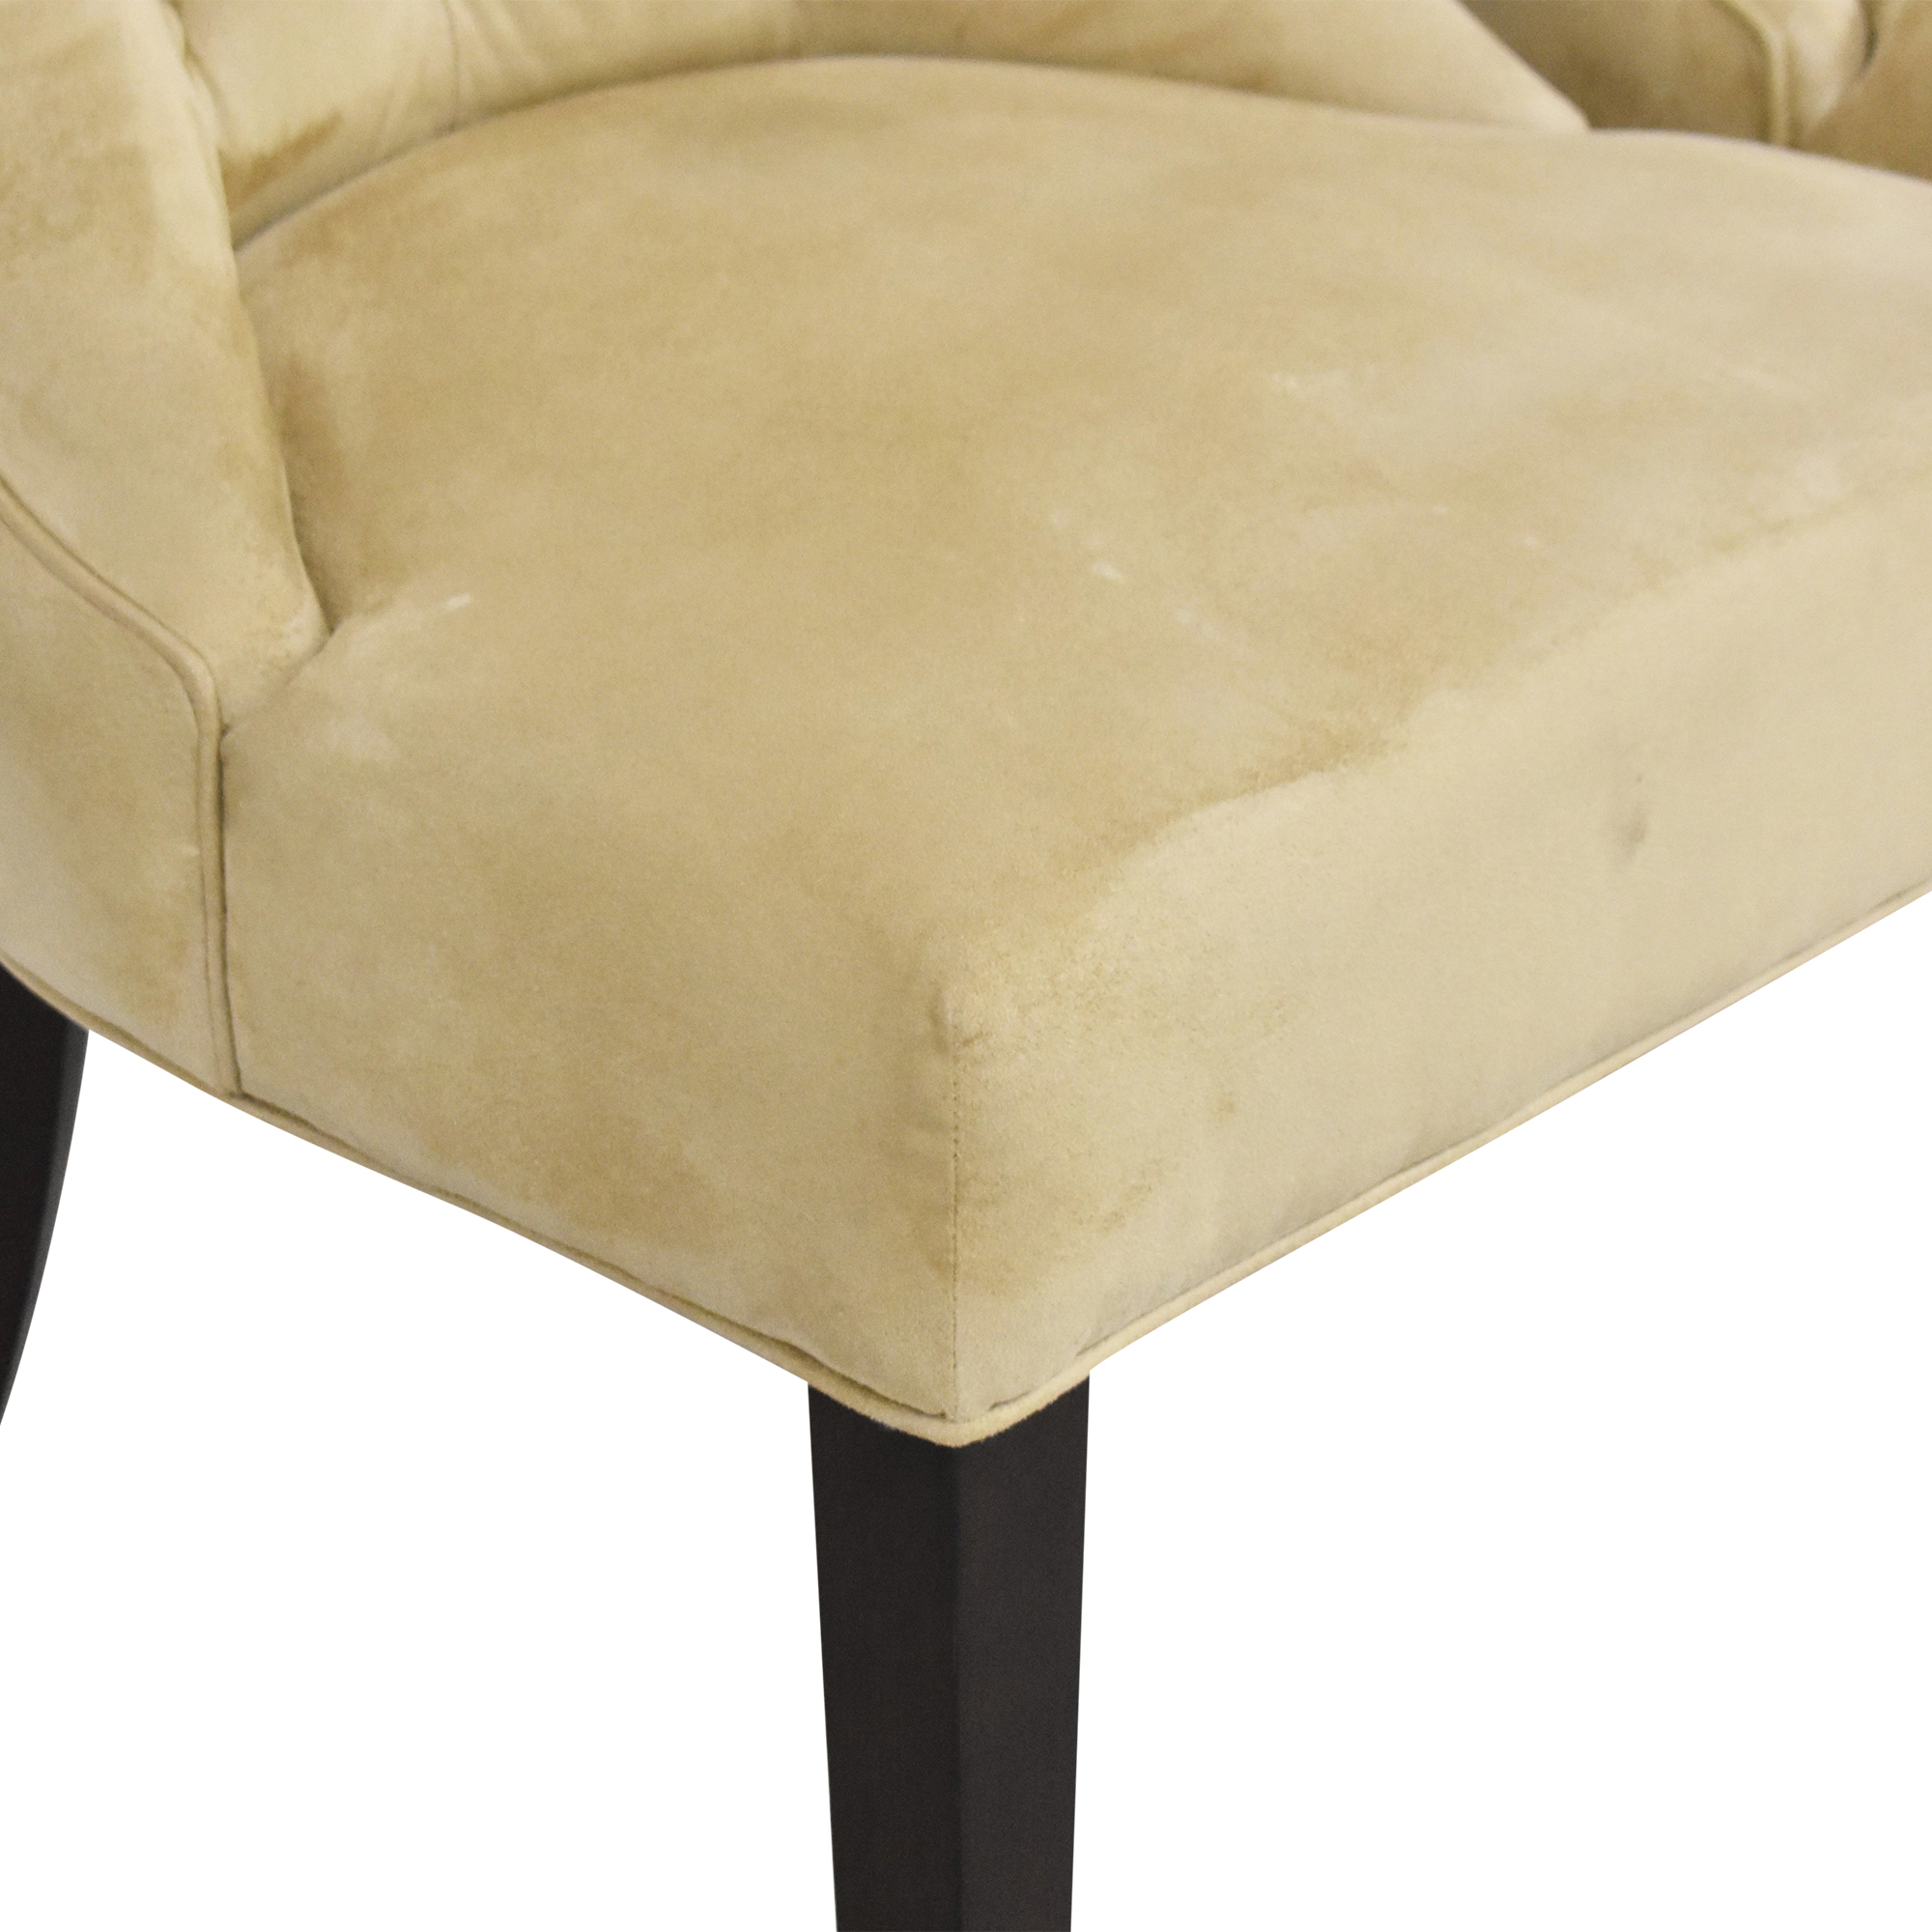 Pottery Barn Pottery Barn Hayes Tufted Dining Chairs dimensions